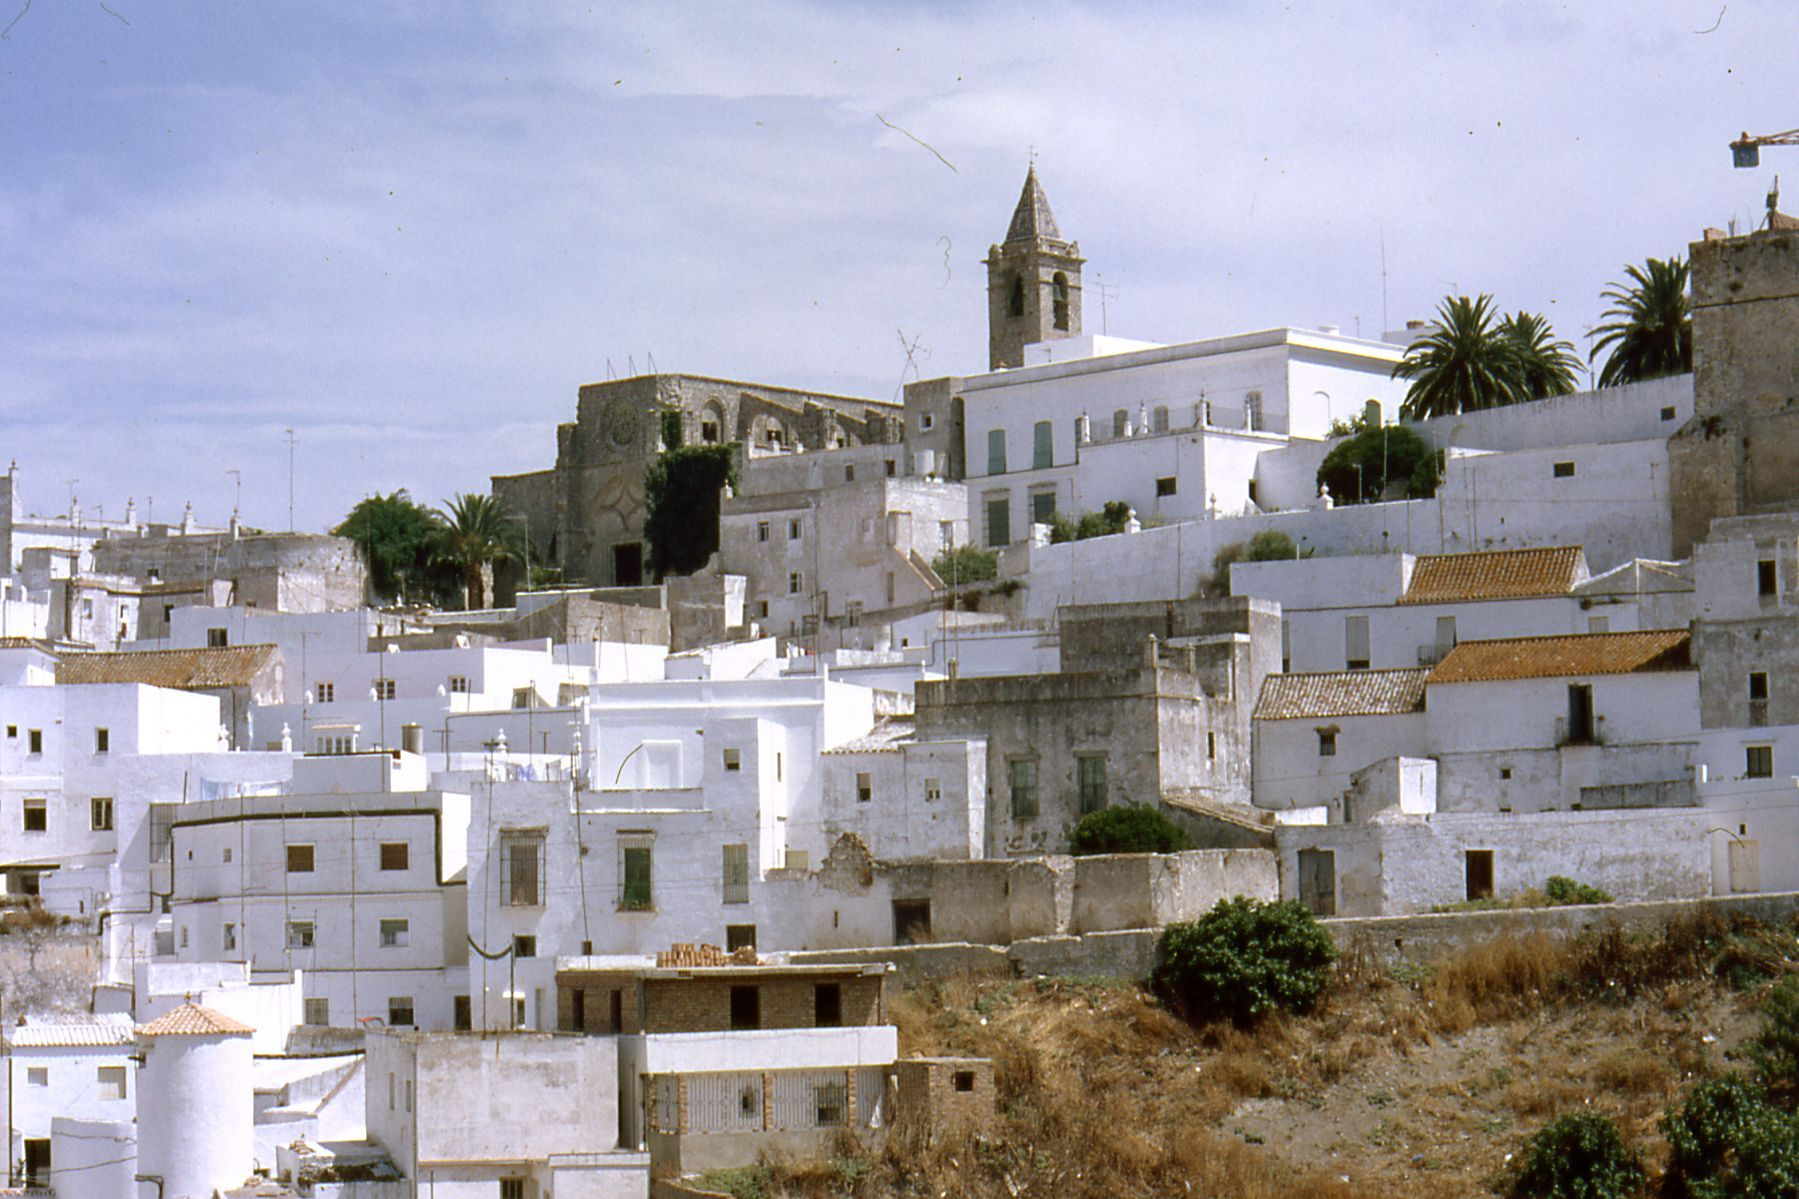 Spagna The charm of white countries (maddyphoto)